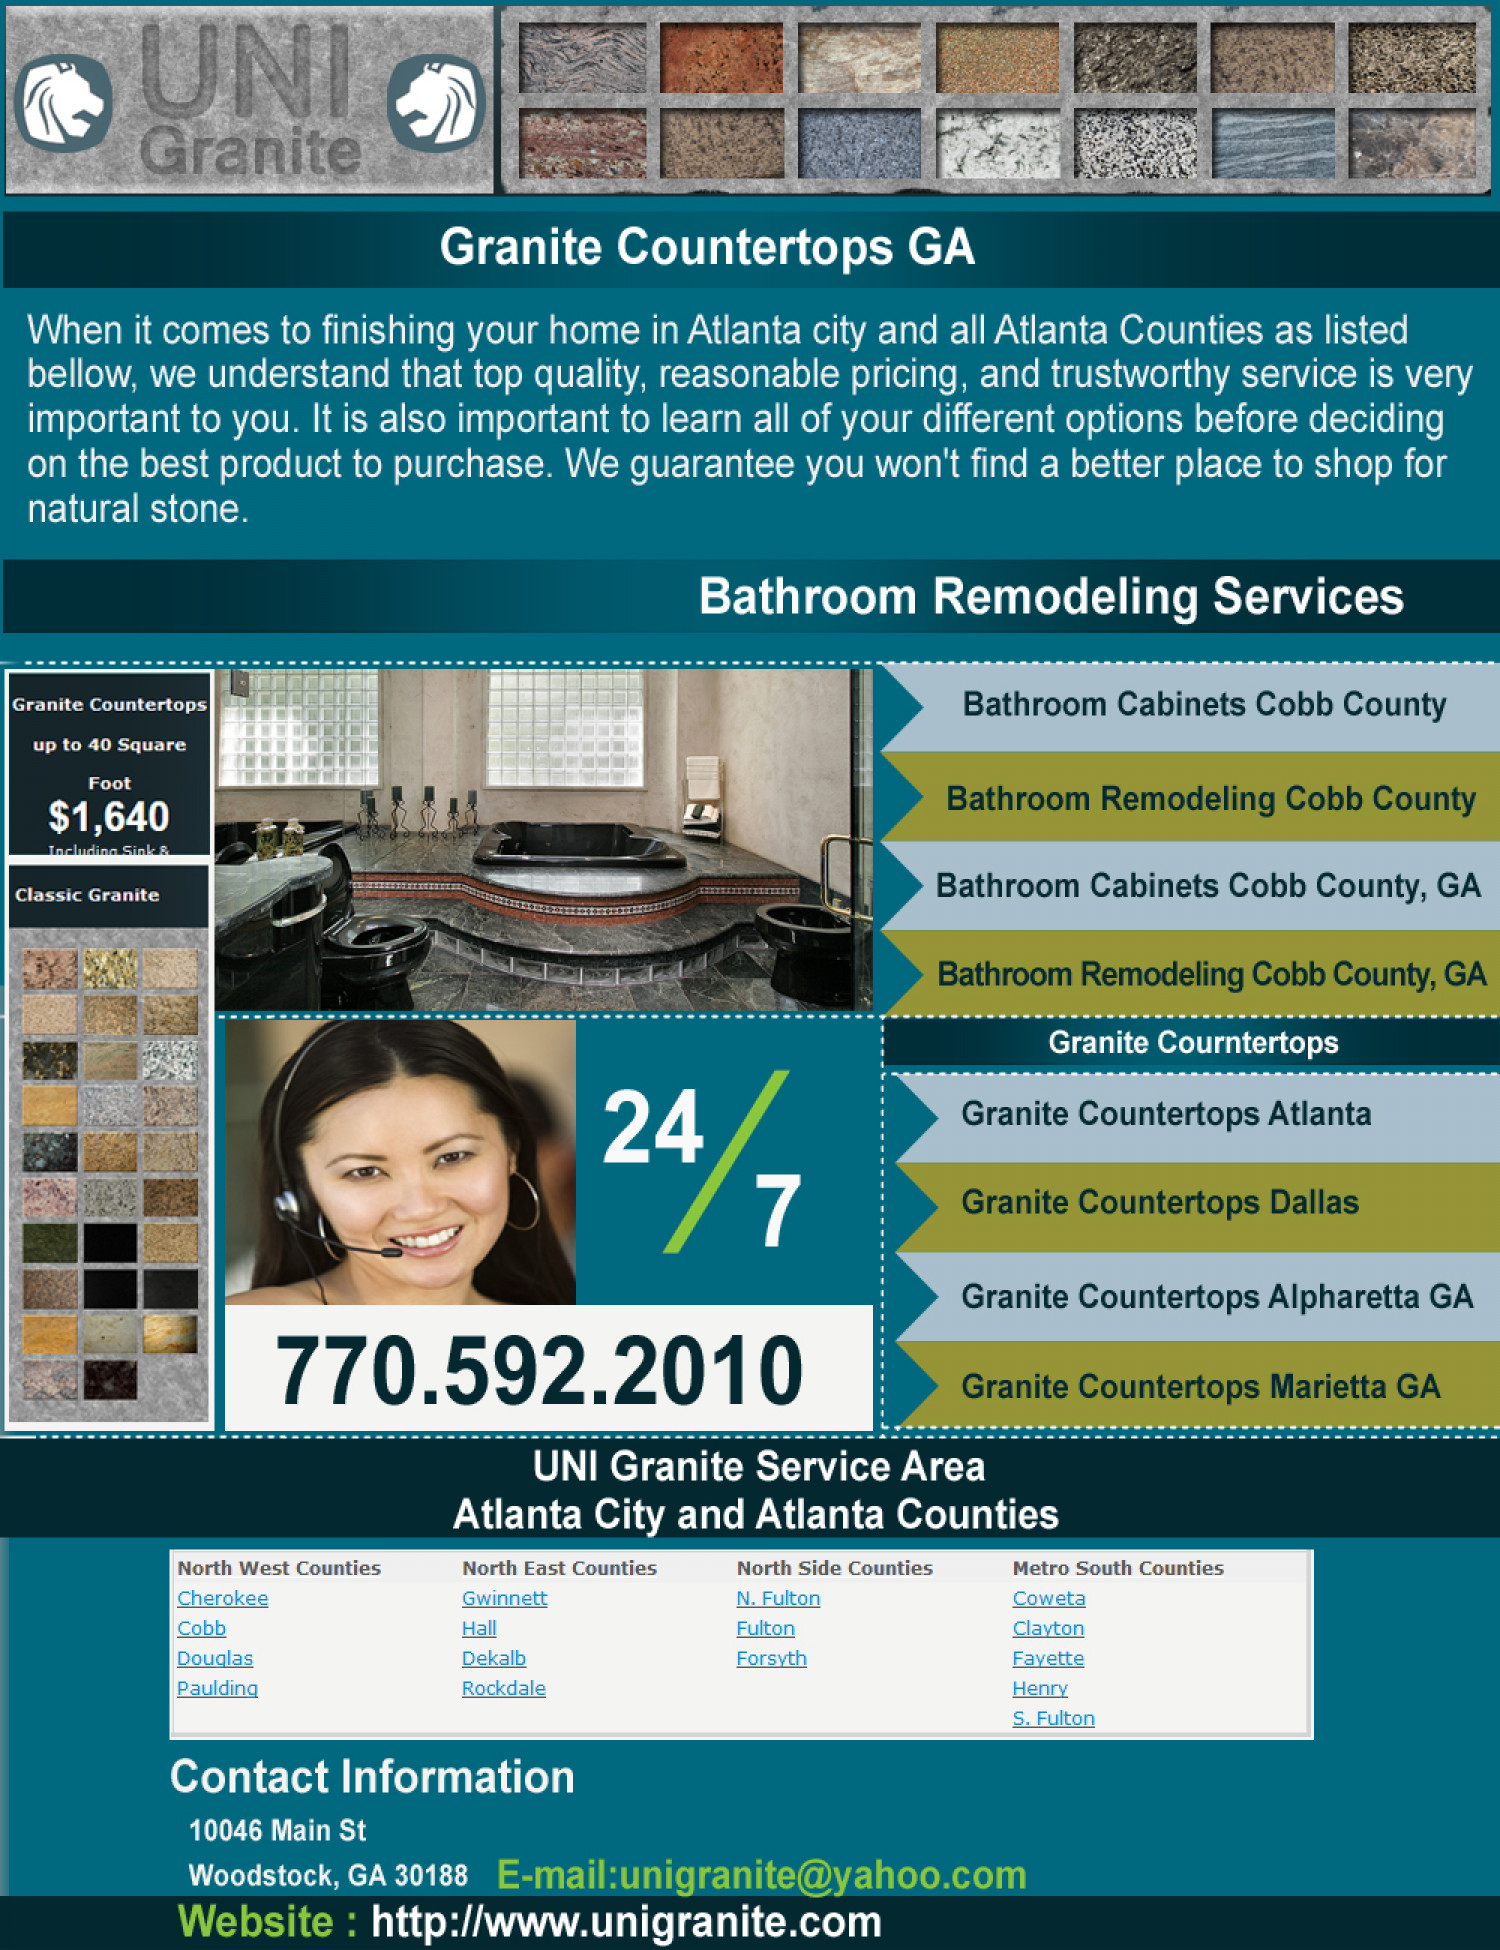 Granite Countertops GA Infographic